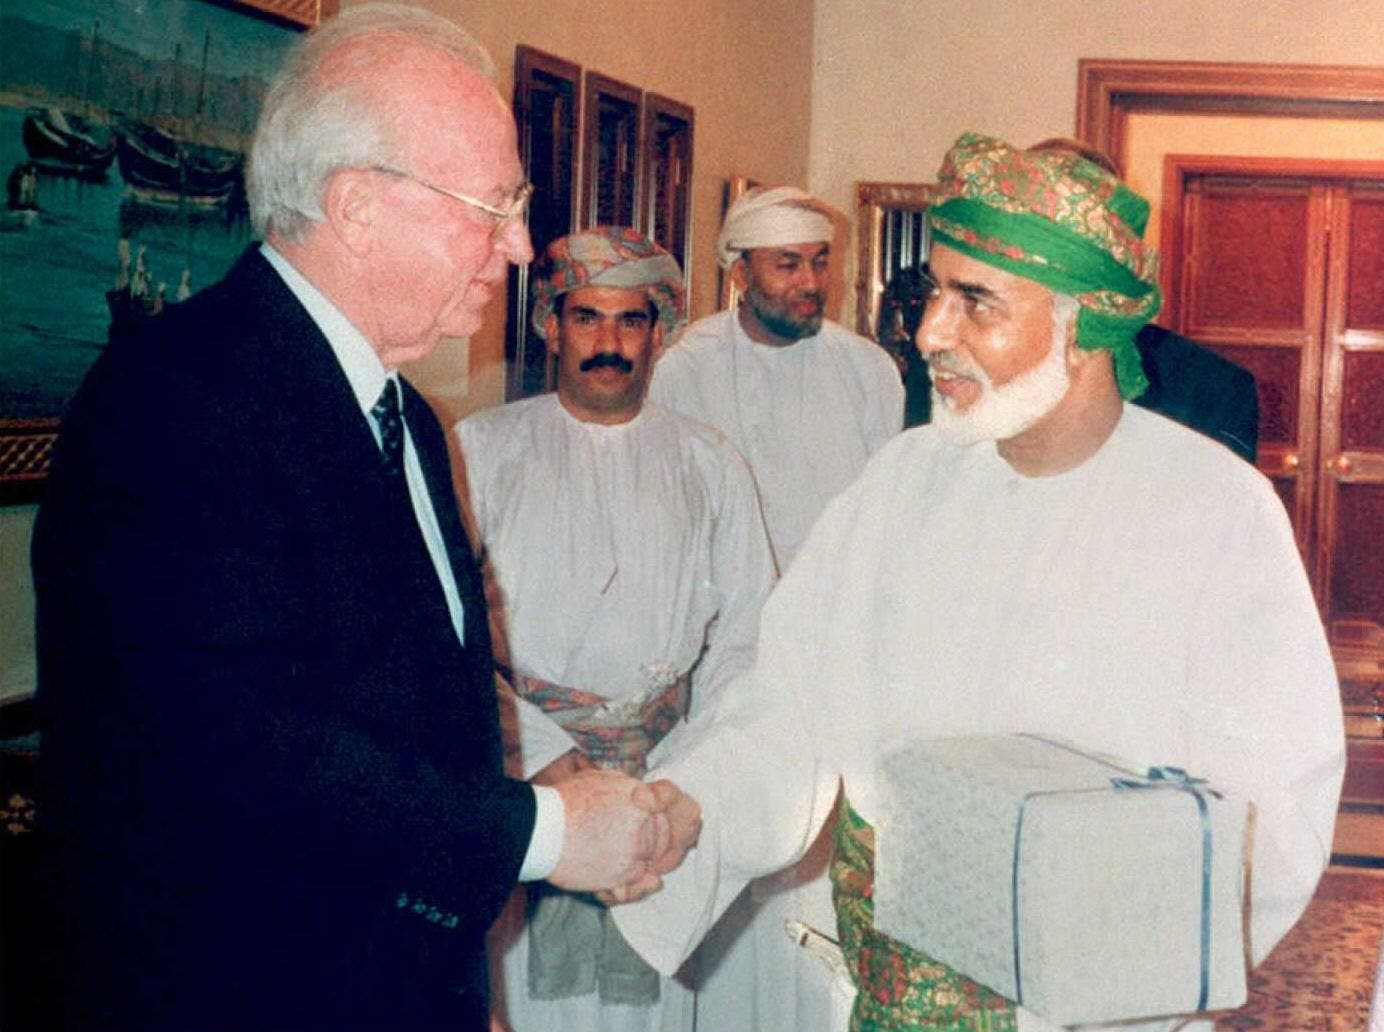 Sultan Qaboos of Oman (R) exchanges presents with Israeli Prime Minister Yitzhak Rabin in Muscat, Oman. (AFP)